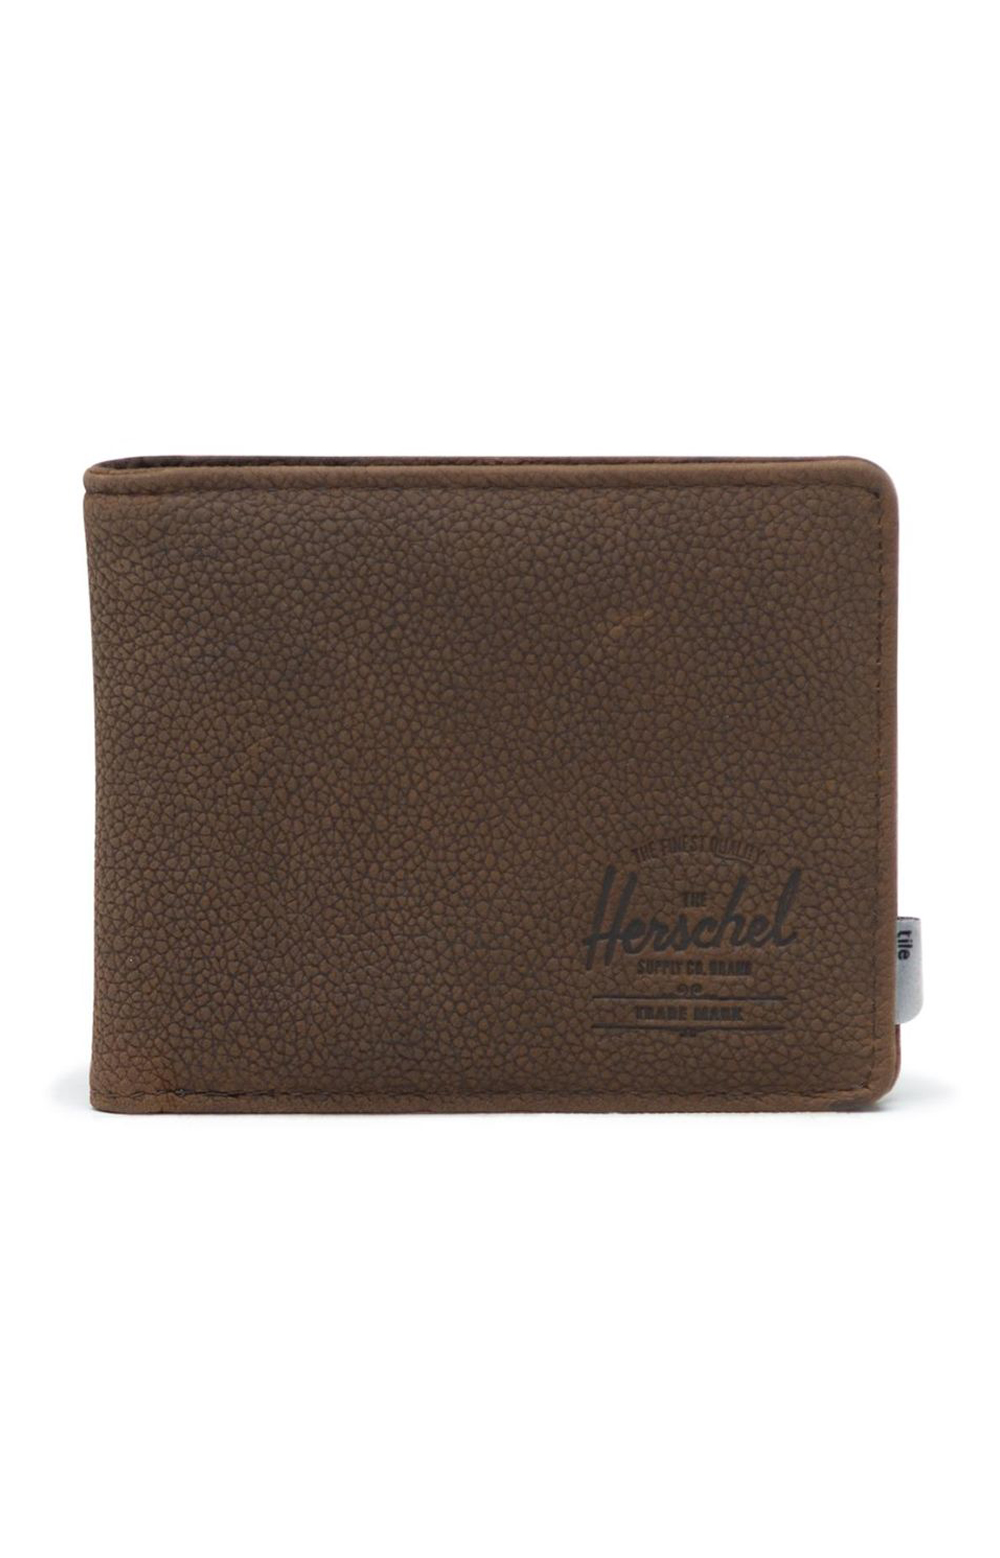 Roy Tile Wallet - Brown Pebbled Leather